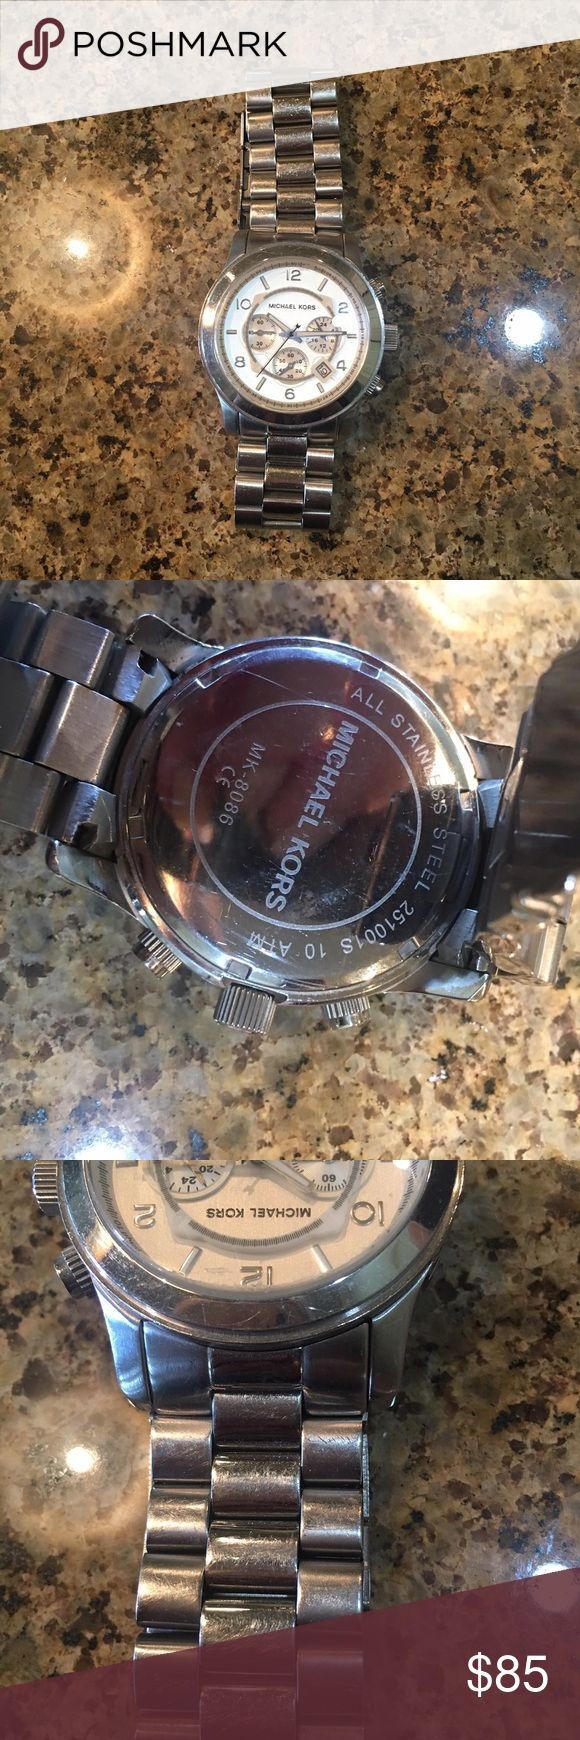 Michael Kors Men's Oversized Watch MK 8086 Metal-Silveryone. Stainless steel bracelet watch. 45 mm high. Water resistant. Has some scratches/tarnish, but still in good condition. KORS Michael Kors Accessories Watches